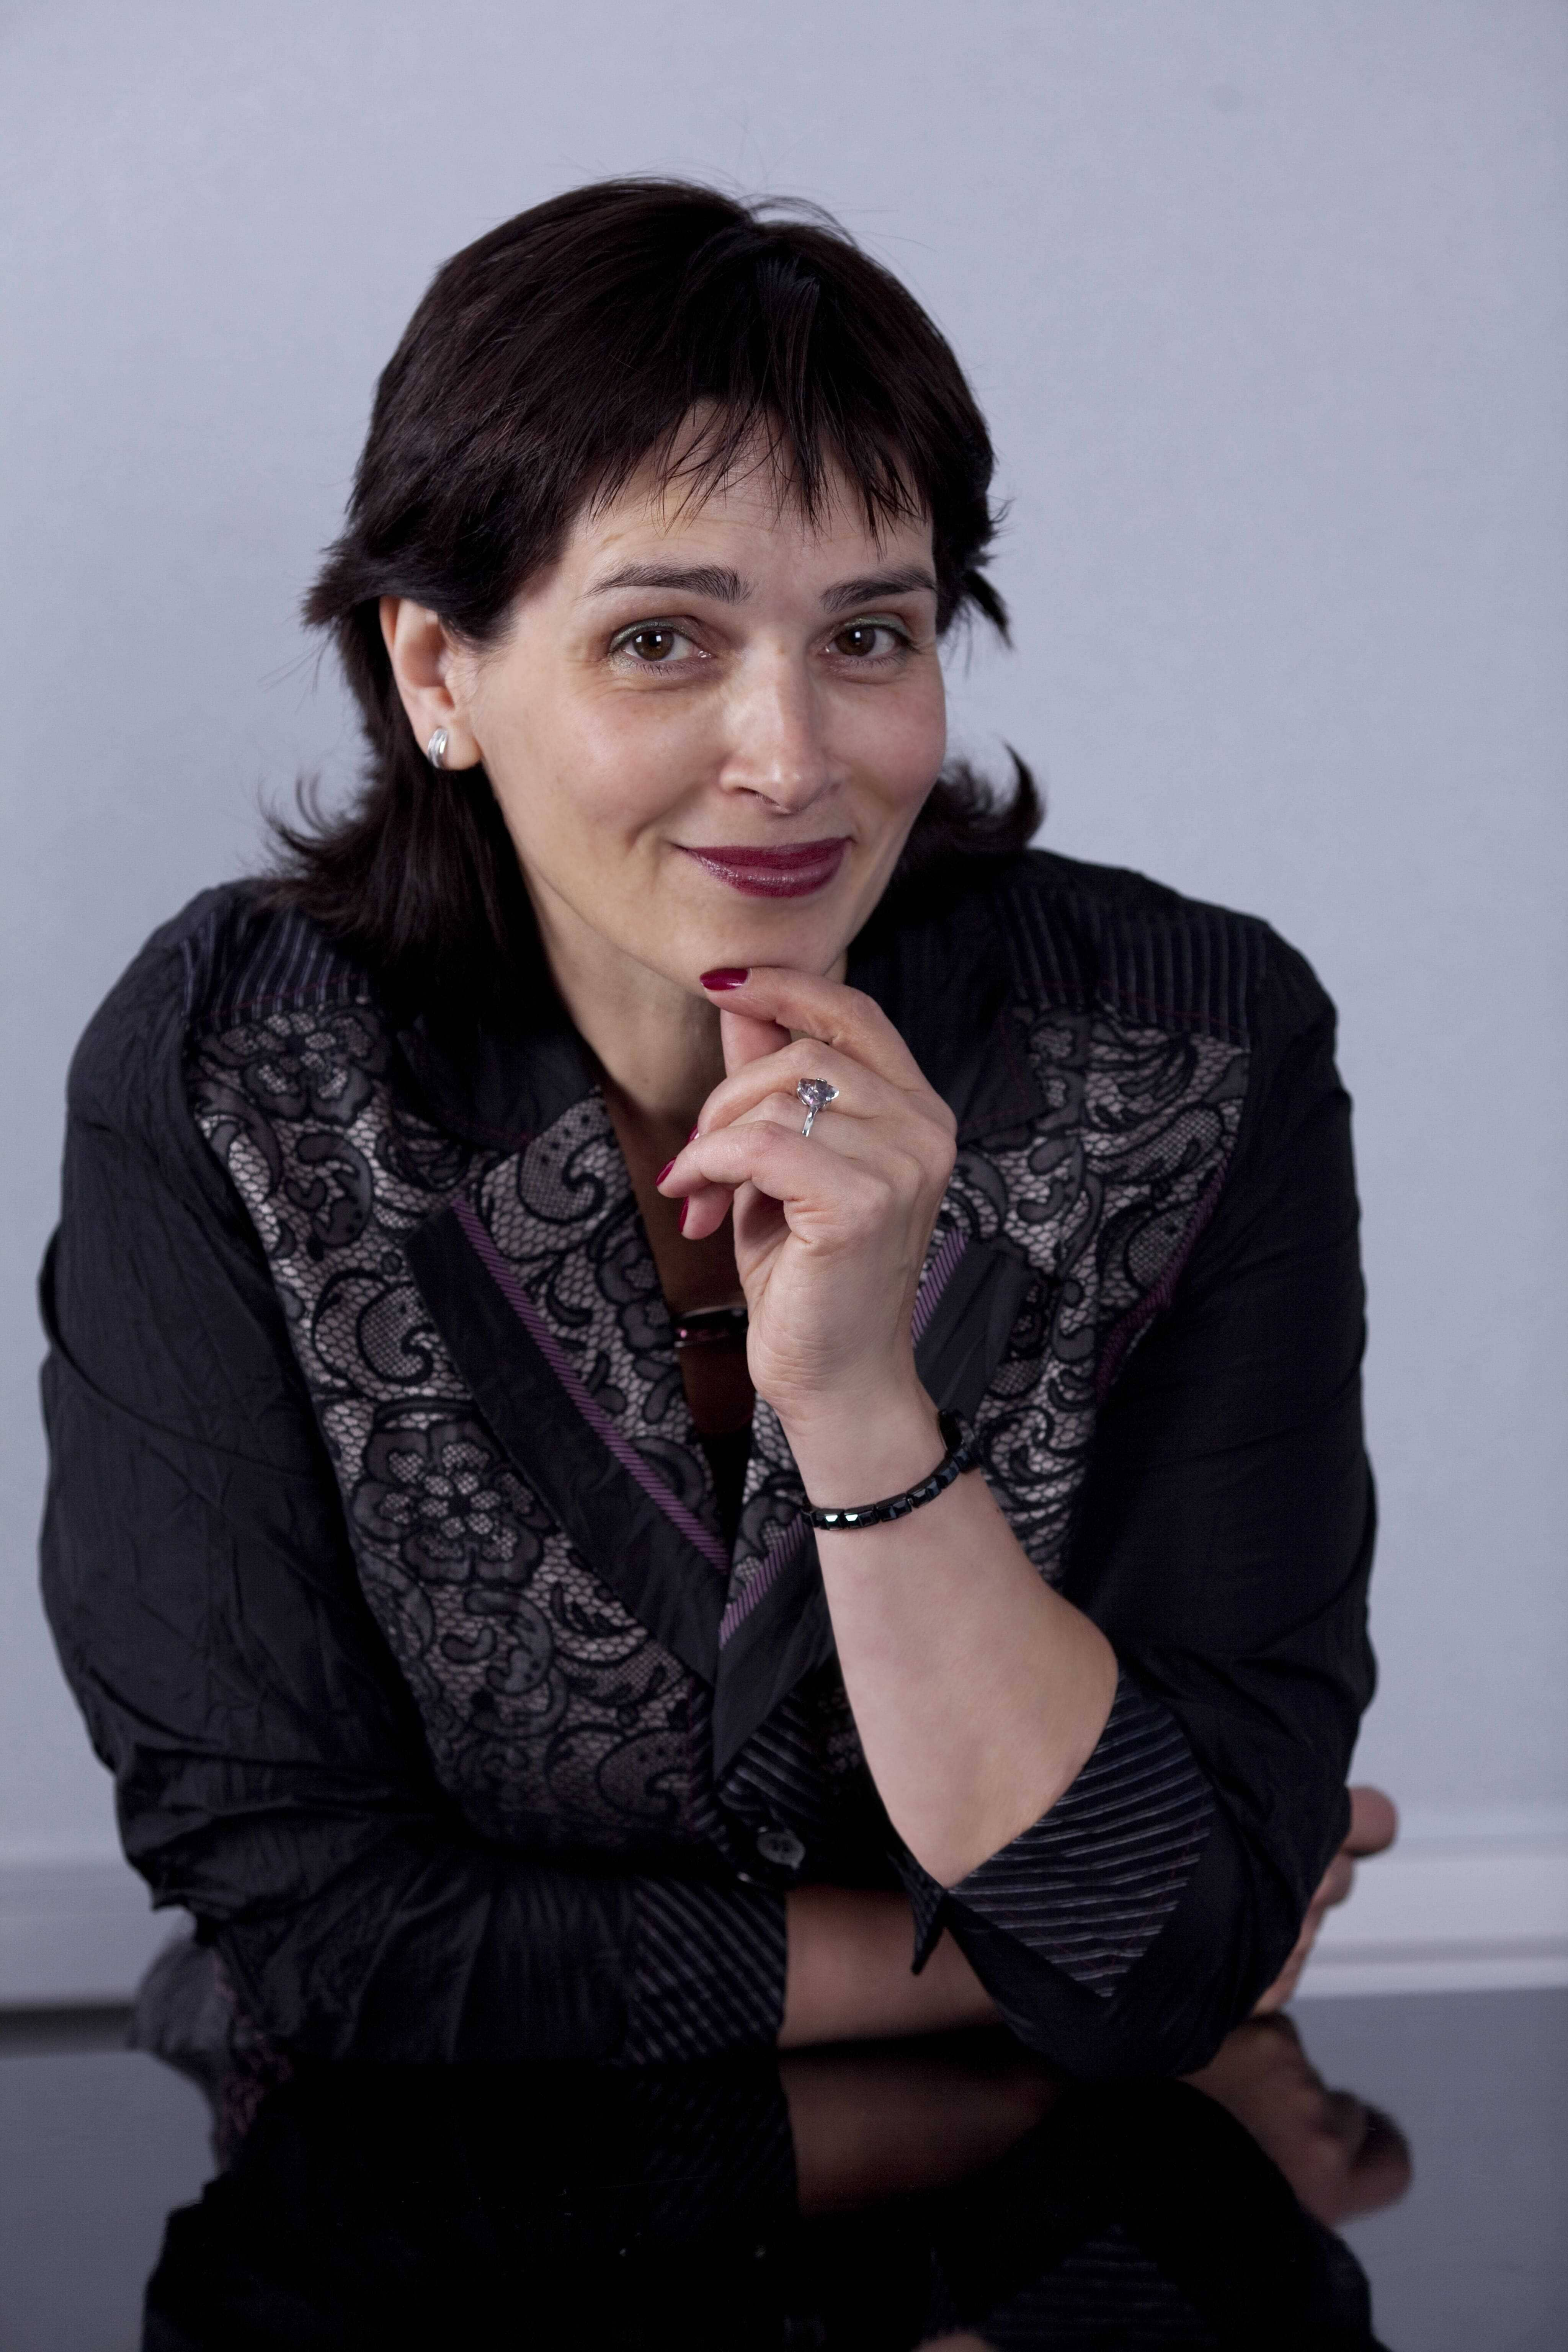 Photo of Elena Edmundovna Voytishek